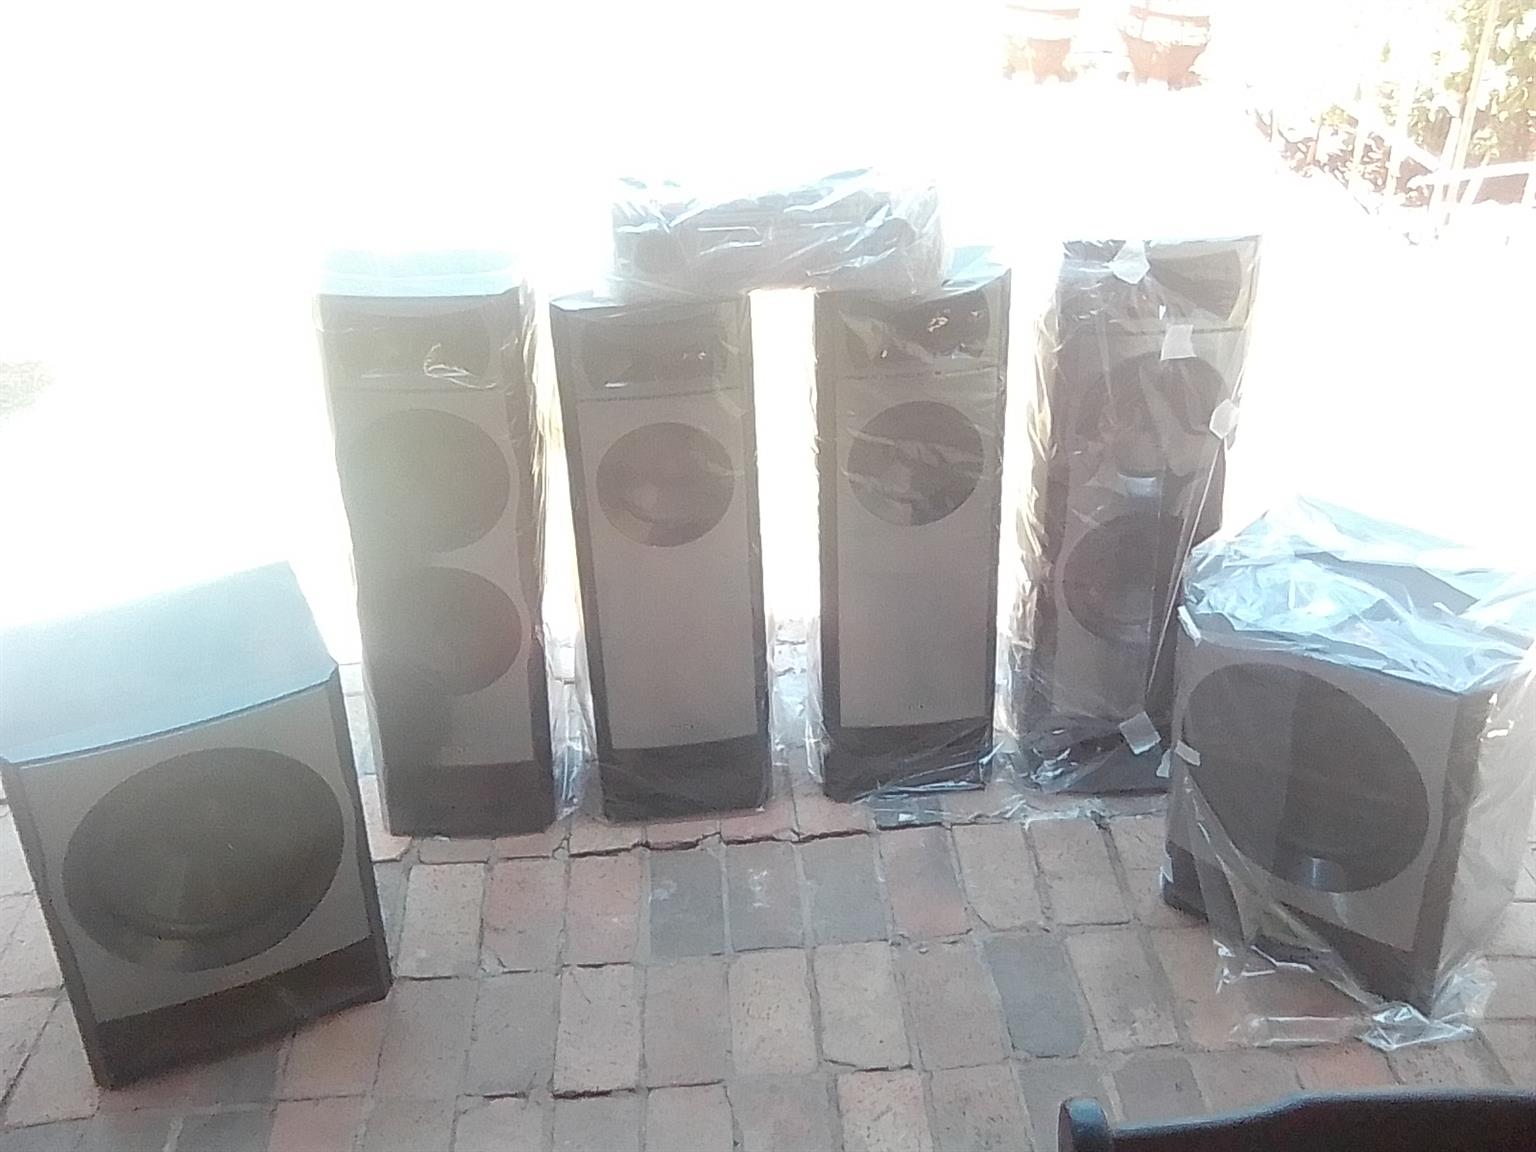 Sony Mgongo surround sound system